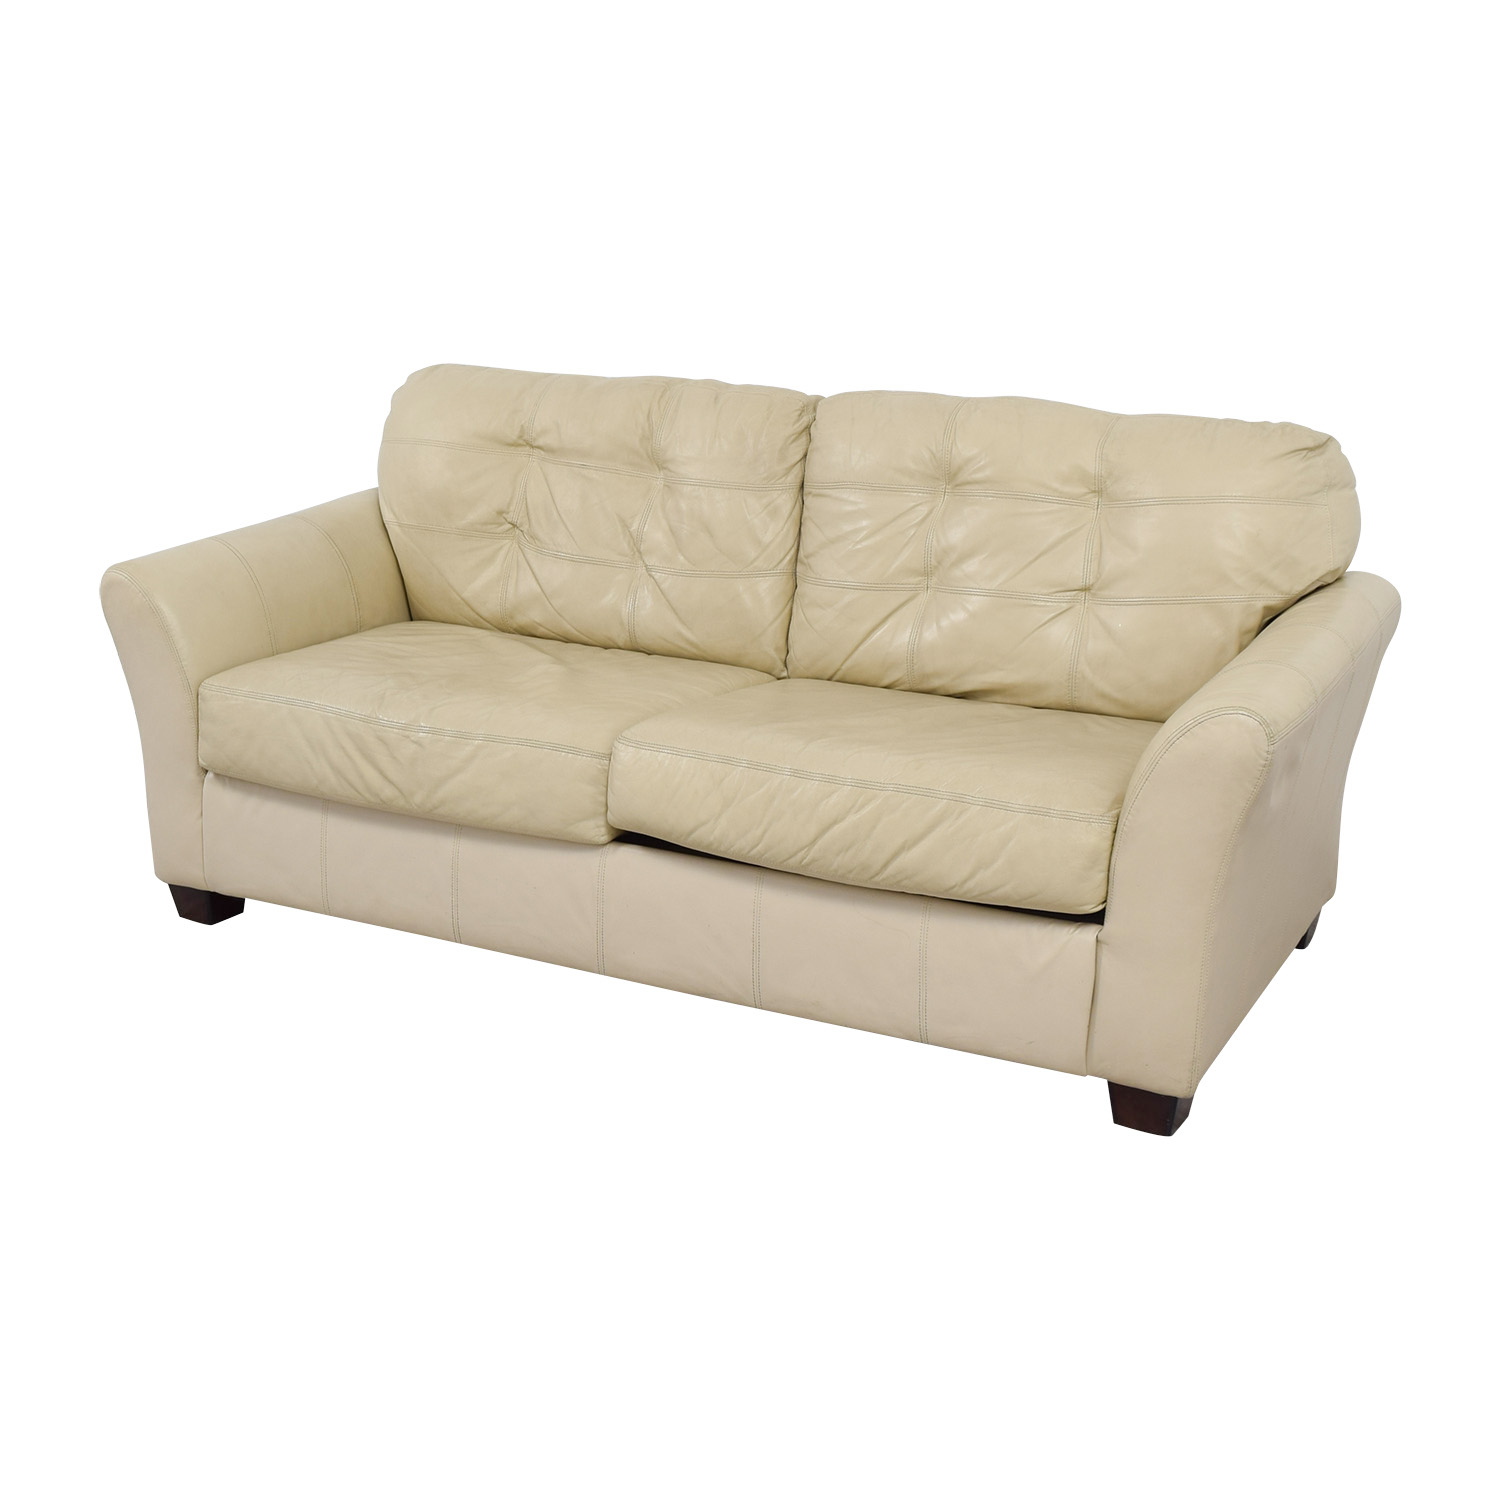 Loveseat Sofa Bed Ashley Furniture: Ashley Furniture Ashley Furniture Tufted Cream